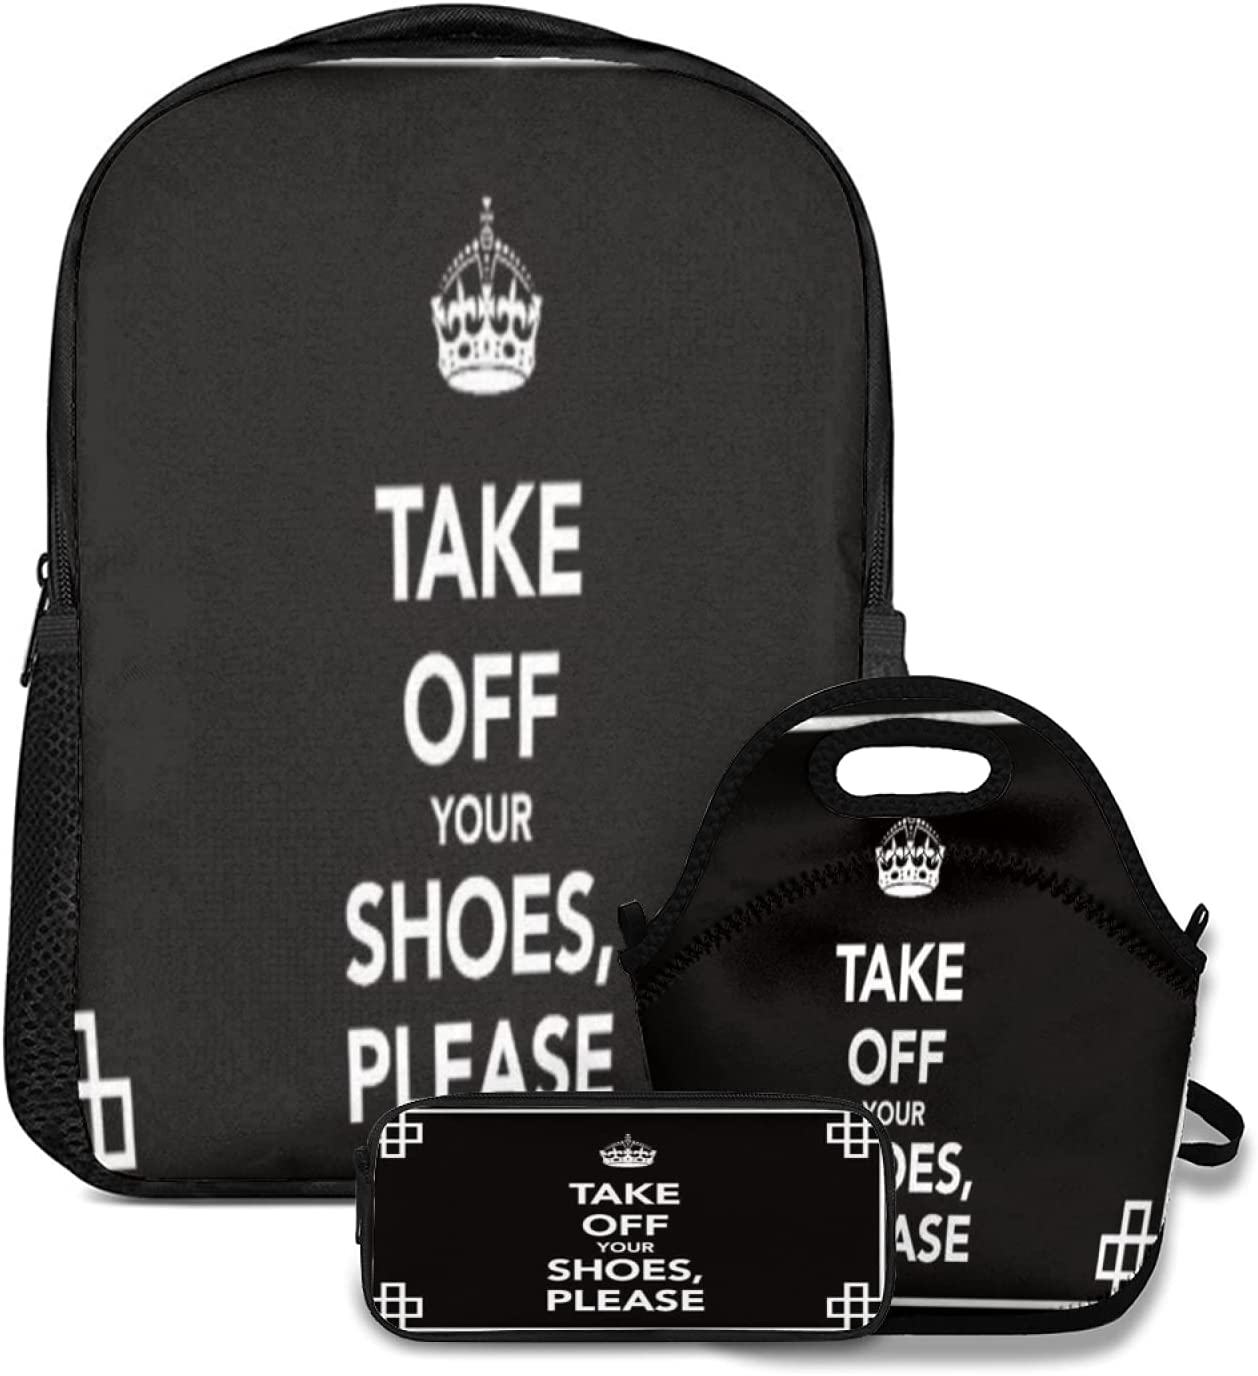 Backpack Lunch tote Bag and SEAL limited product Pencil Crown 3pc TAK Topics on TV Simple Case set